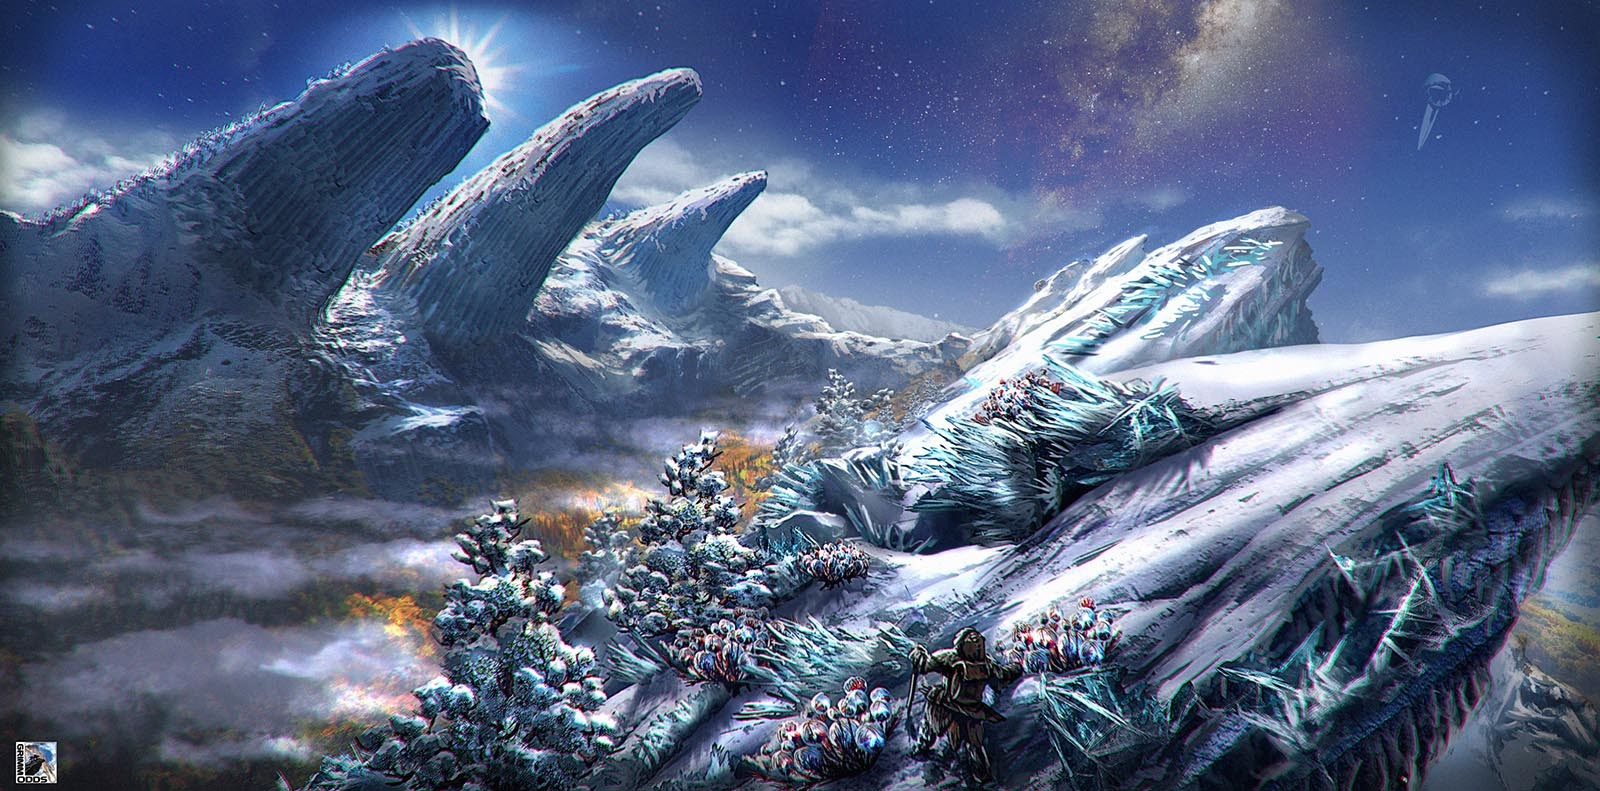 Francis goeltner grimmodds environments temperatecontinent snowypeaks plainsig s